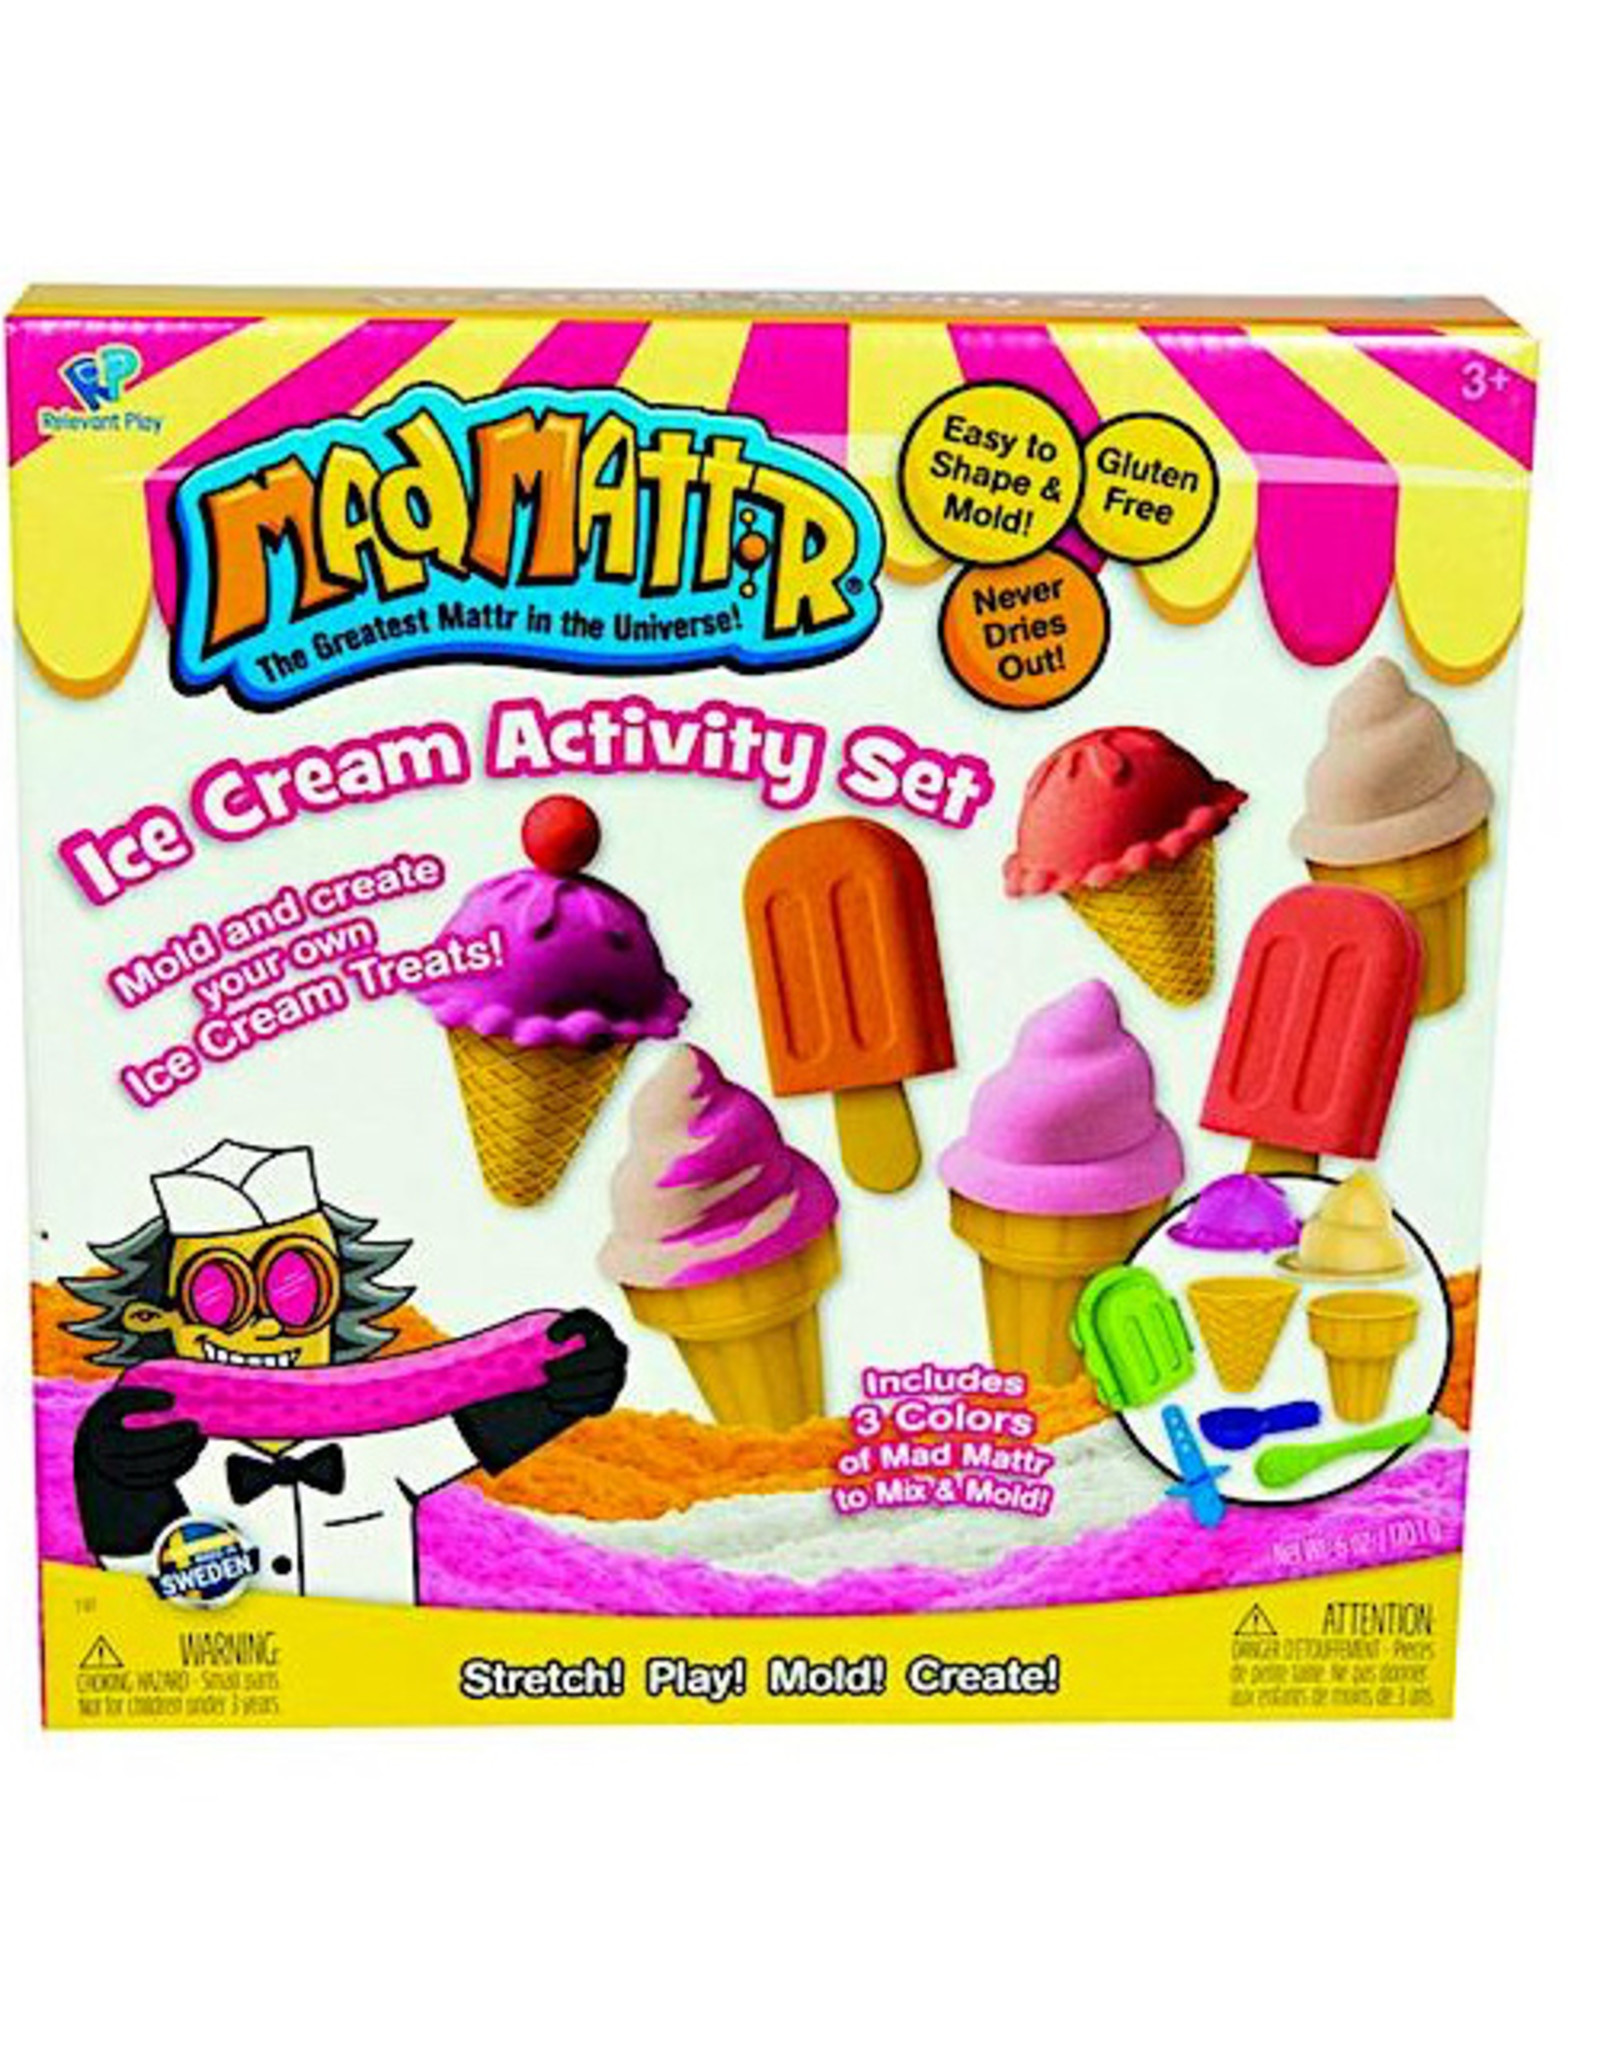 Relevant Play Mad Mattr Ice Cream Activity Set